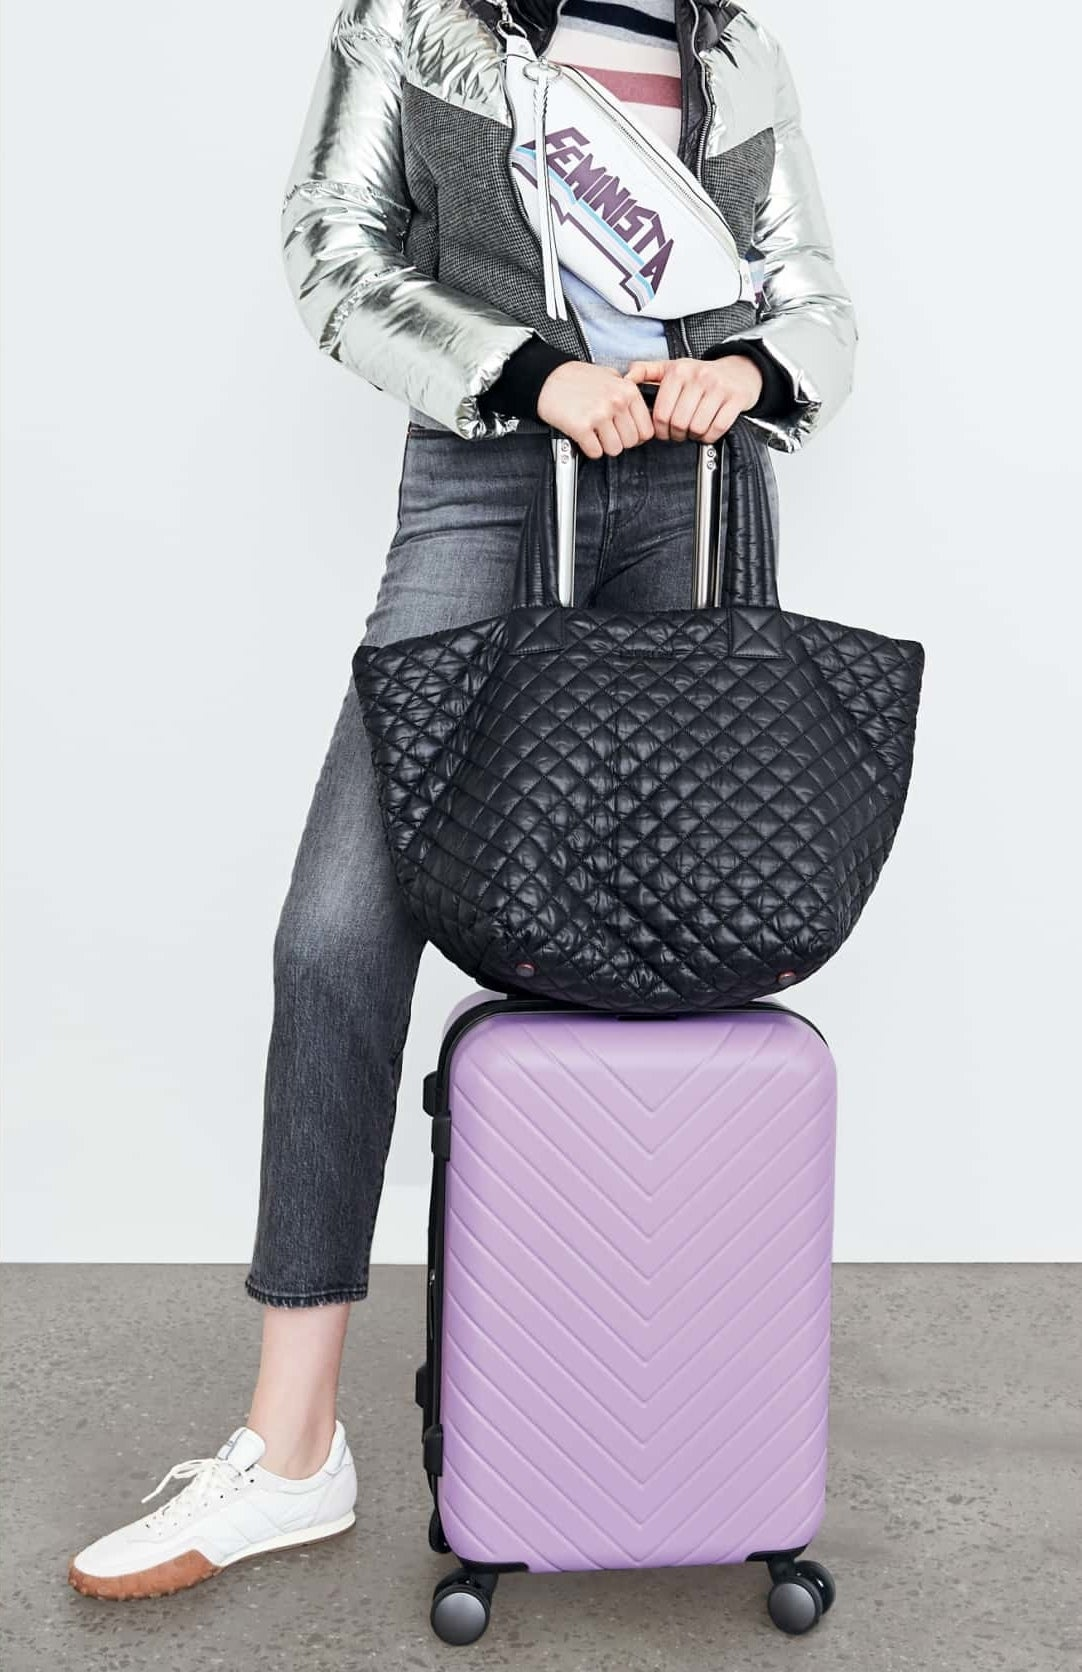 The quilted bag in black sitting on top of a suitcase